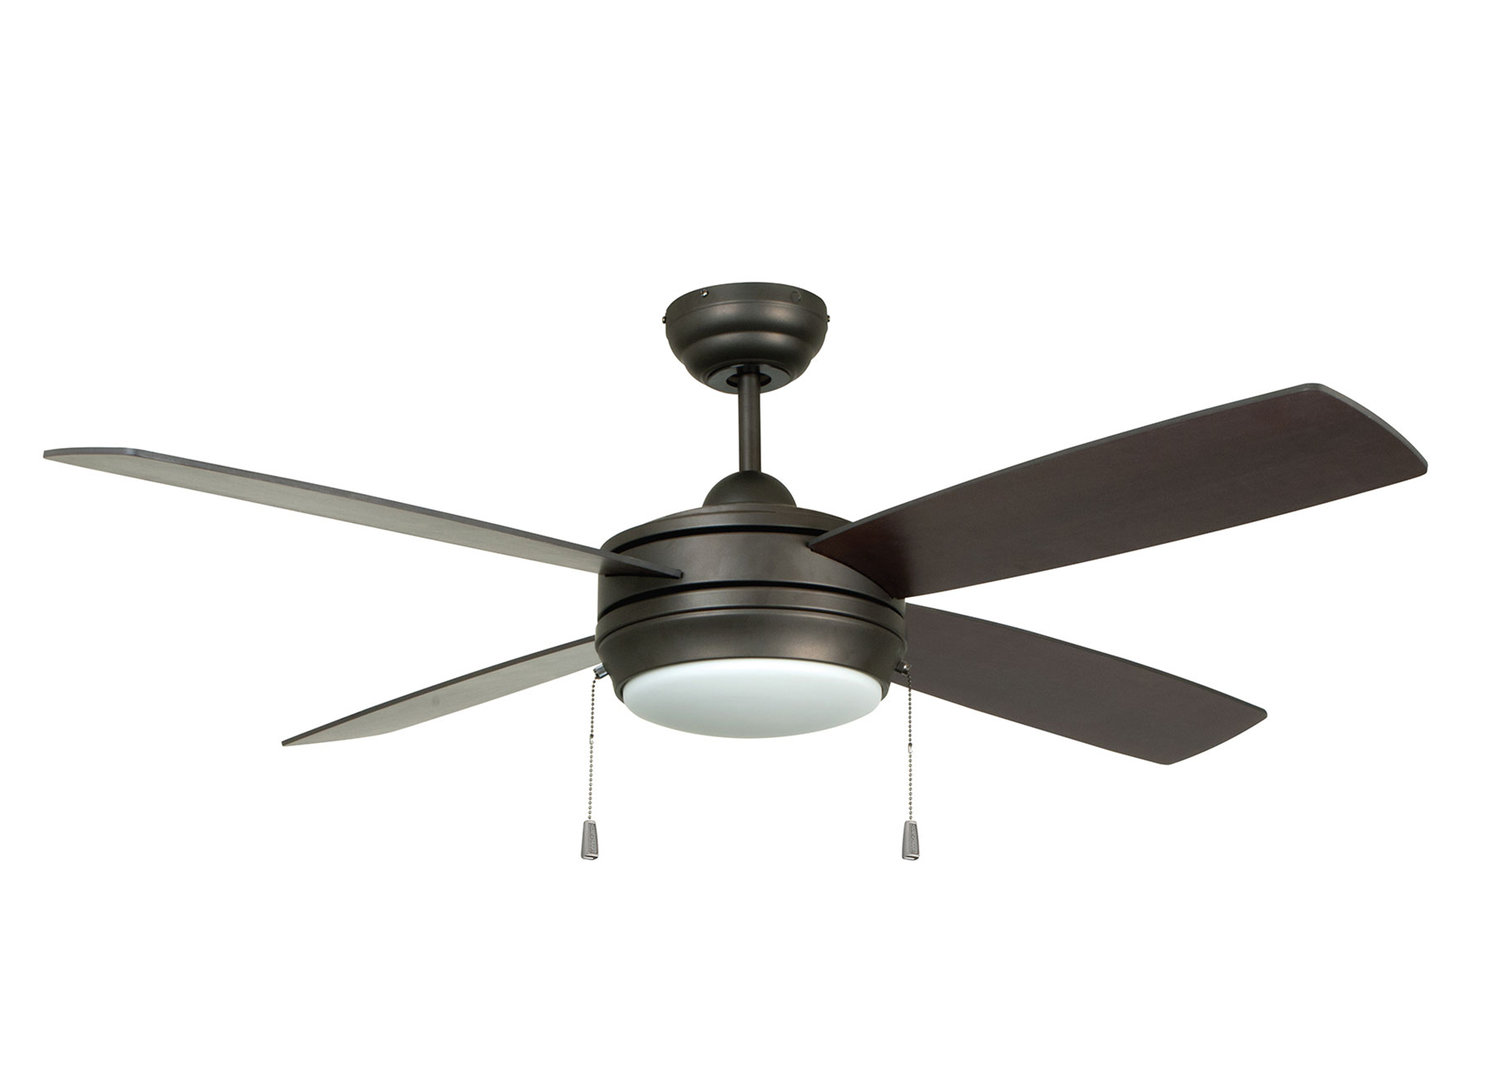 Stylish Ceiling Fans On A Budget Howlett Co Fan Wiring Just Want Light To Be Switched All Modern Moriarty 132